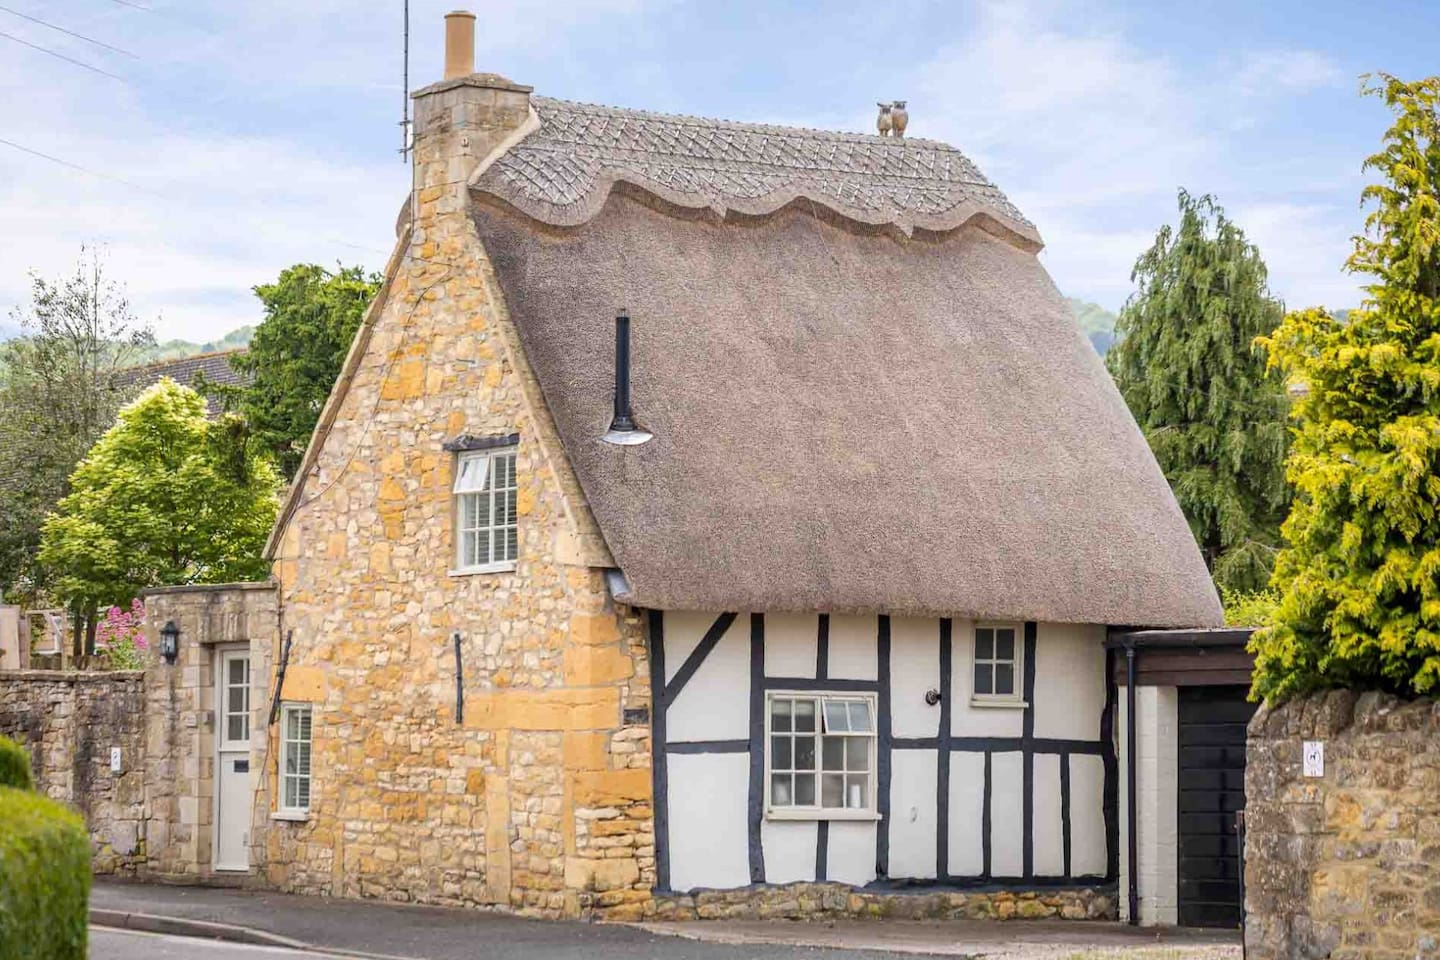 The blissful Orchard Cottage, peacefully located in the heart of the picturesque village of Broadway